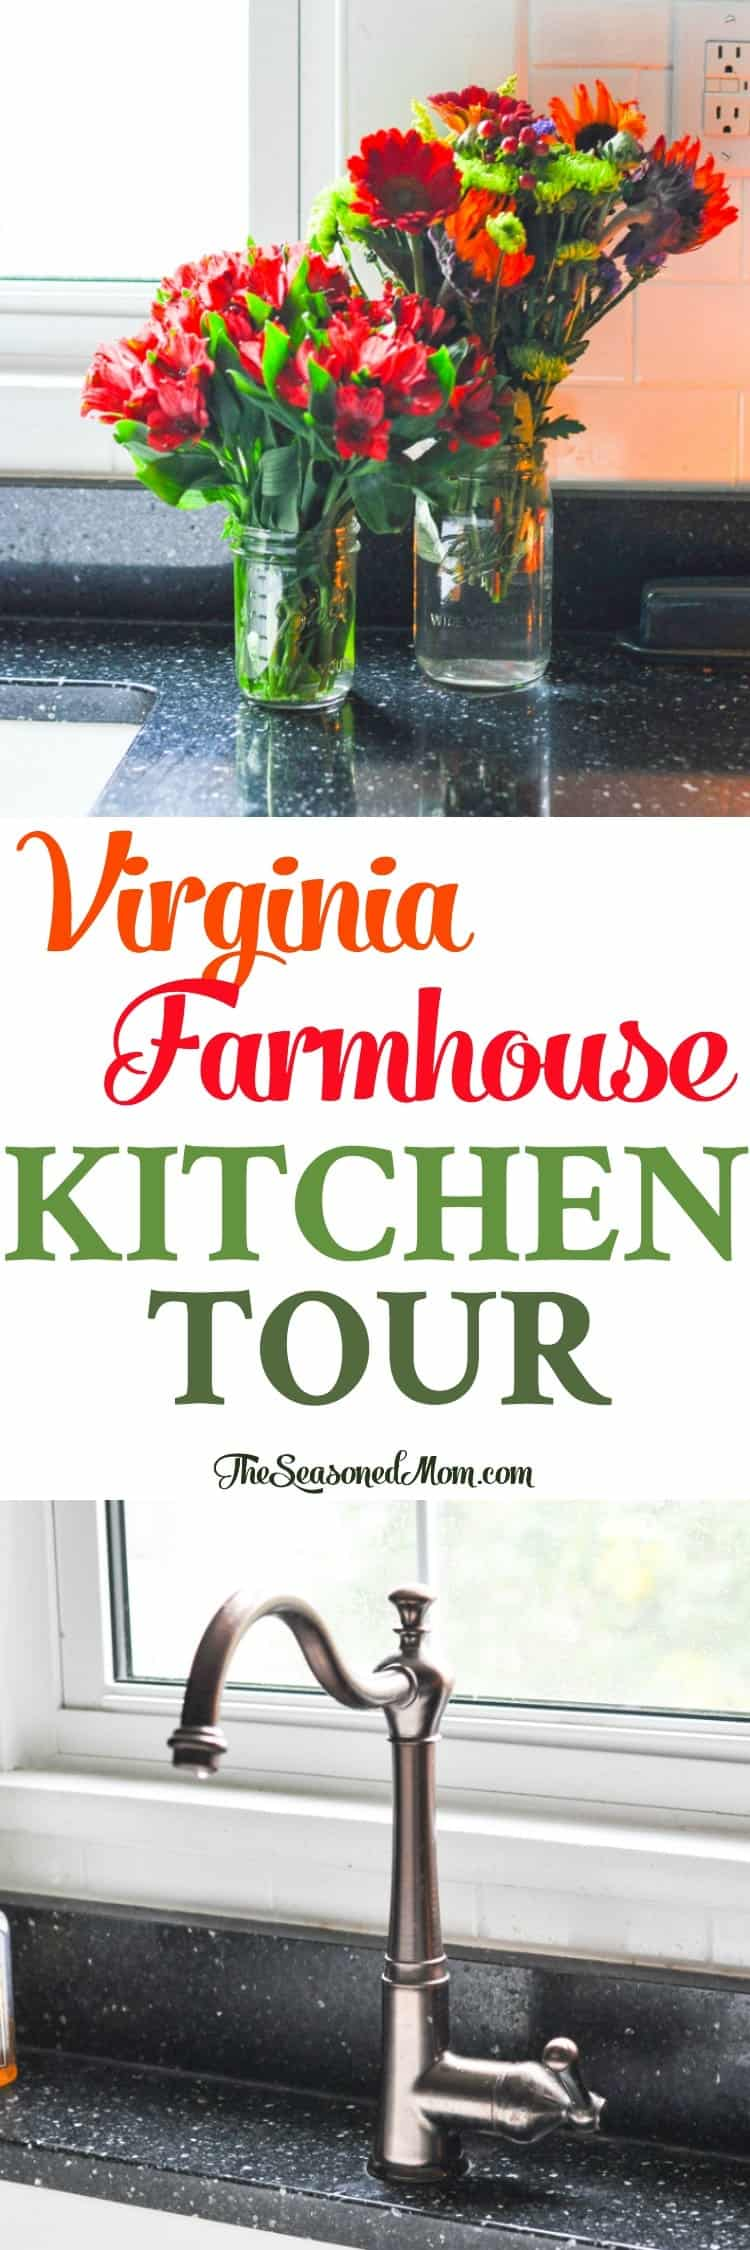 Behind the scenes with a cozy farmhouse kitchen tour! Home Decor | Kitchen Ideas | Kitchen Decor | Kitchen Remodel #kitchen #decor #farmhouse